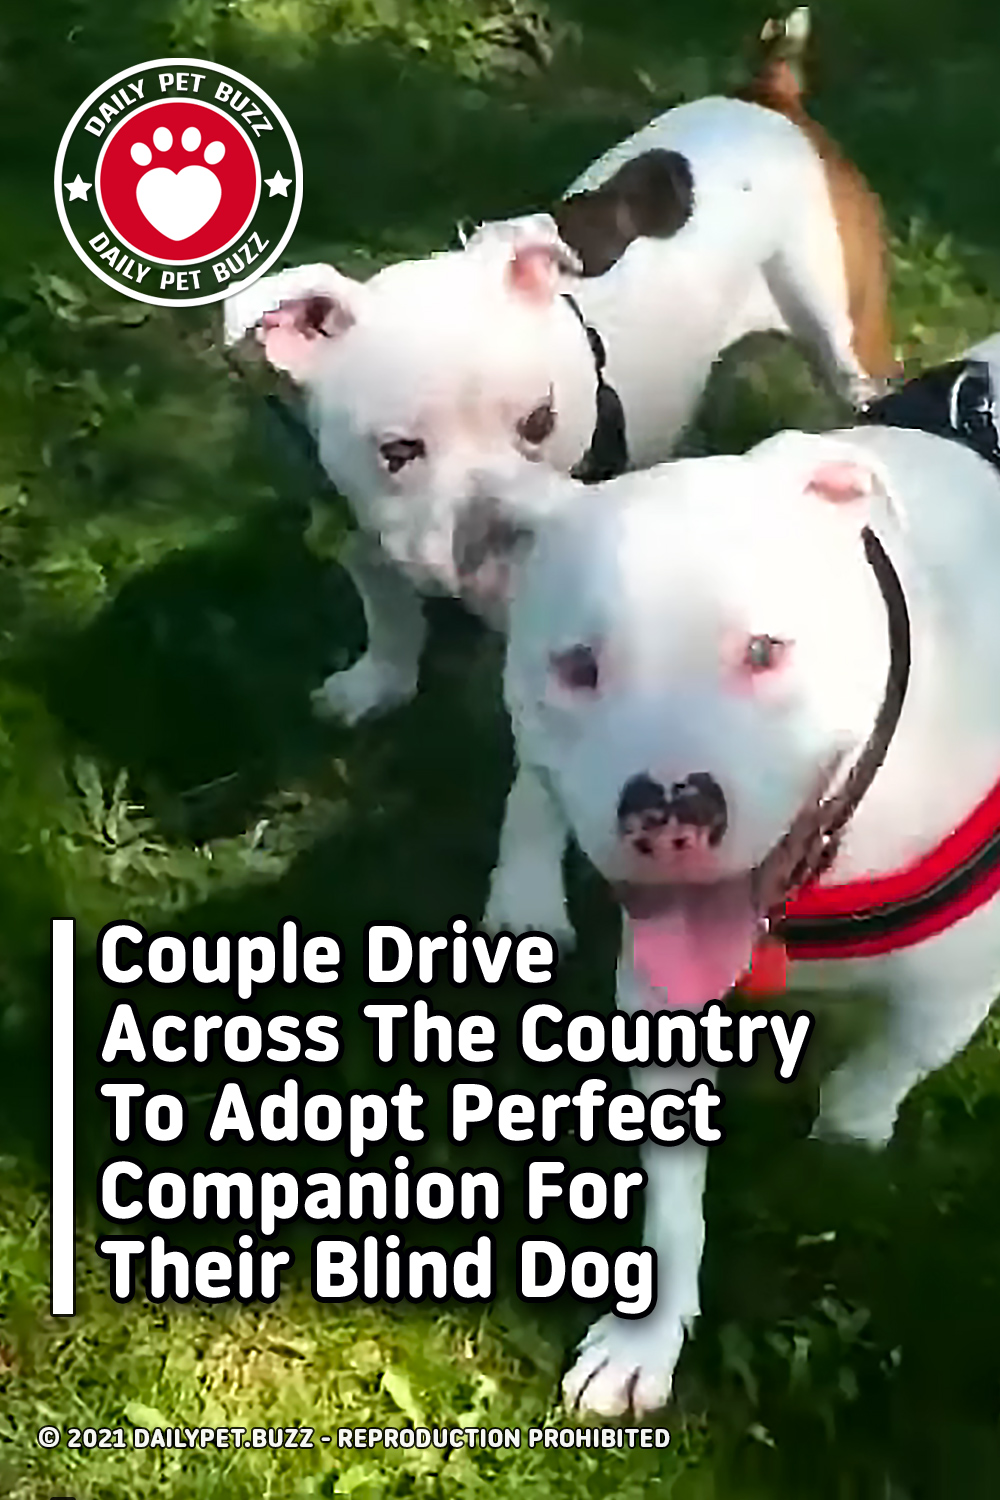 Couple Drives Across The Country To Adopt Perfect Companion For Their Blind Dog